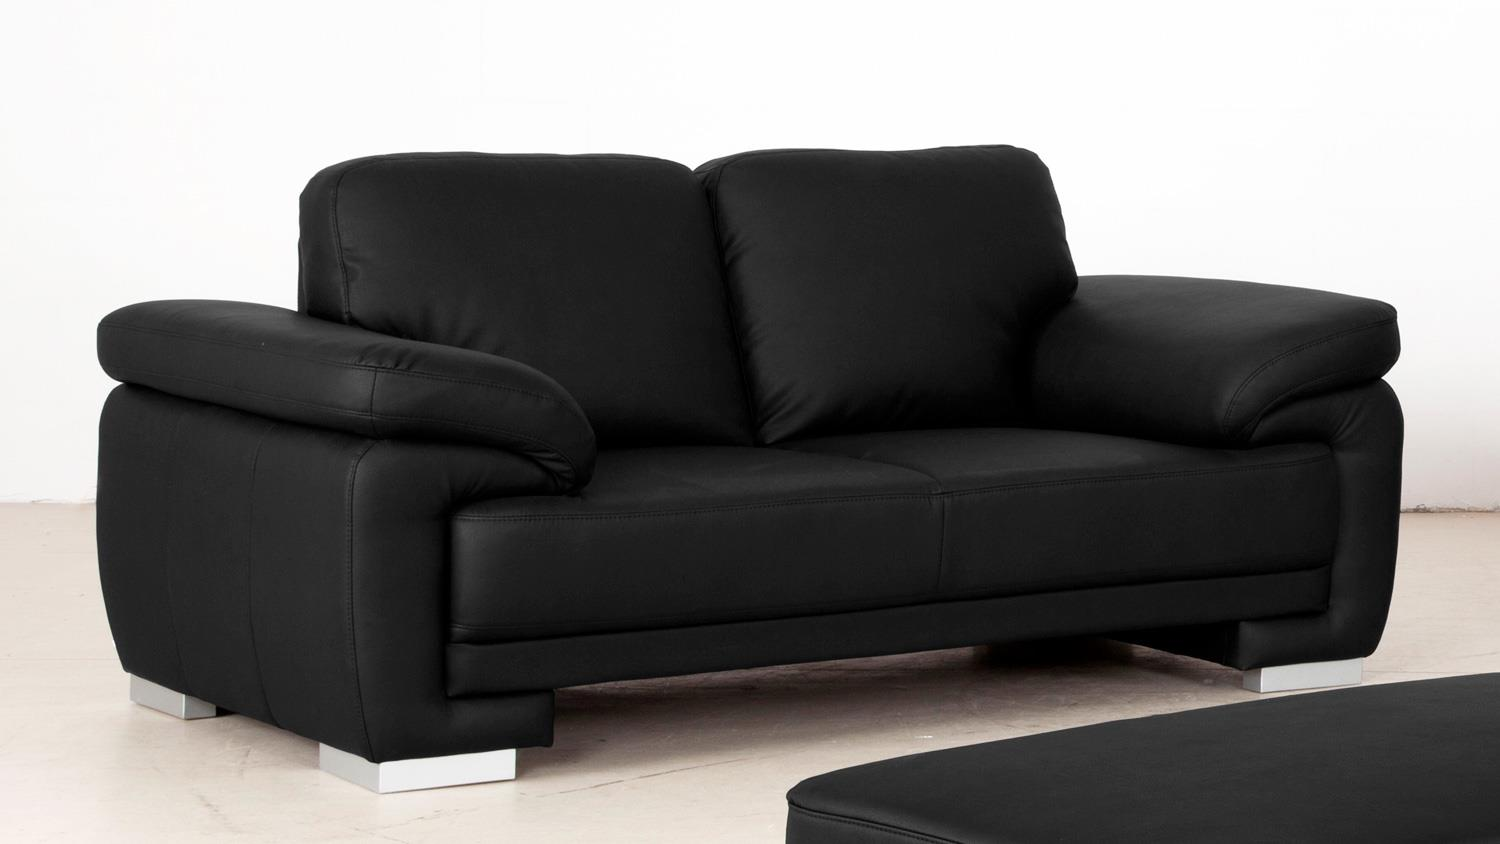 sofa laura 2 sitzer bezug schwarz f e massiv silber mit nosagfederung. Black Bedroom Furniture Sets. Home Design Ideas